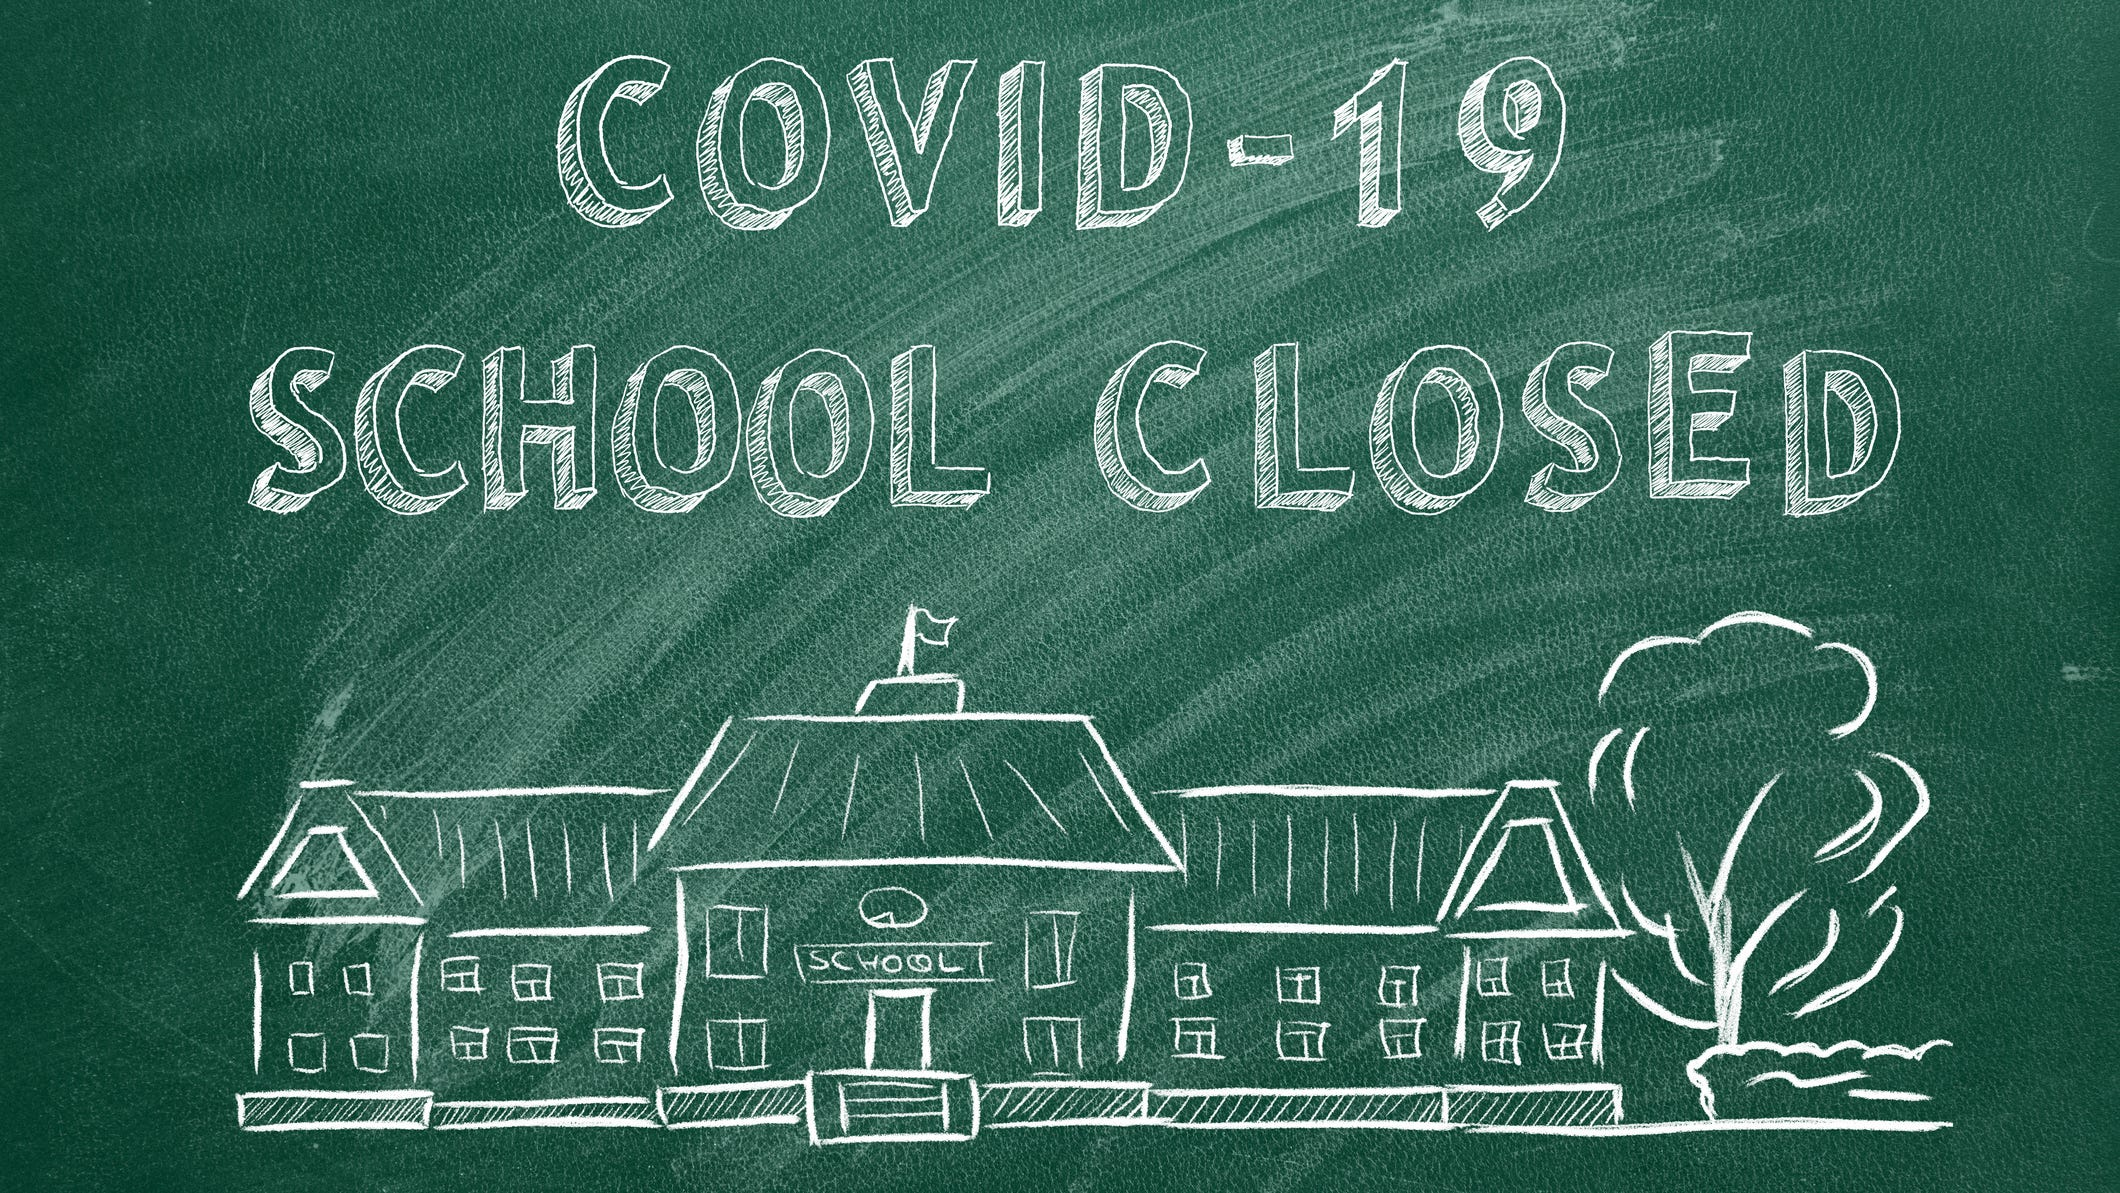 COVID-19 Louisville: Our Lady of Lourdes School closes due to case